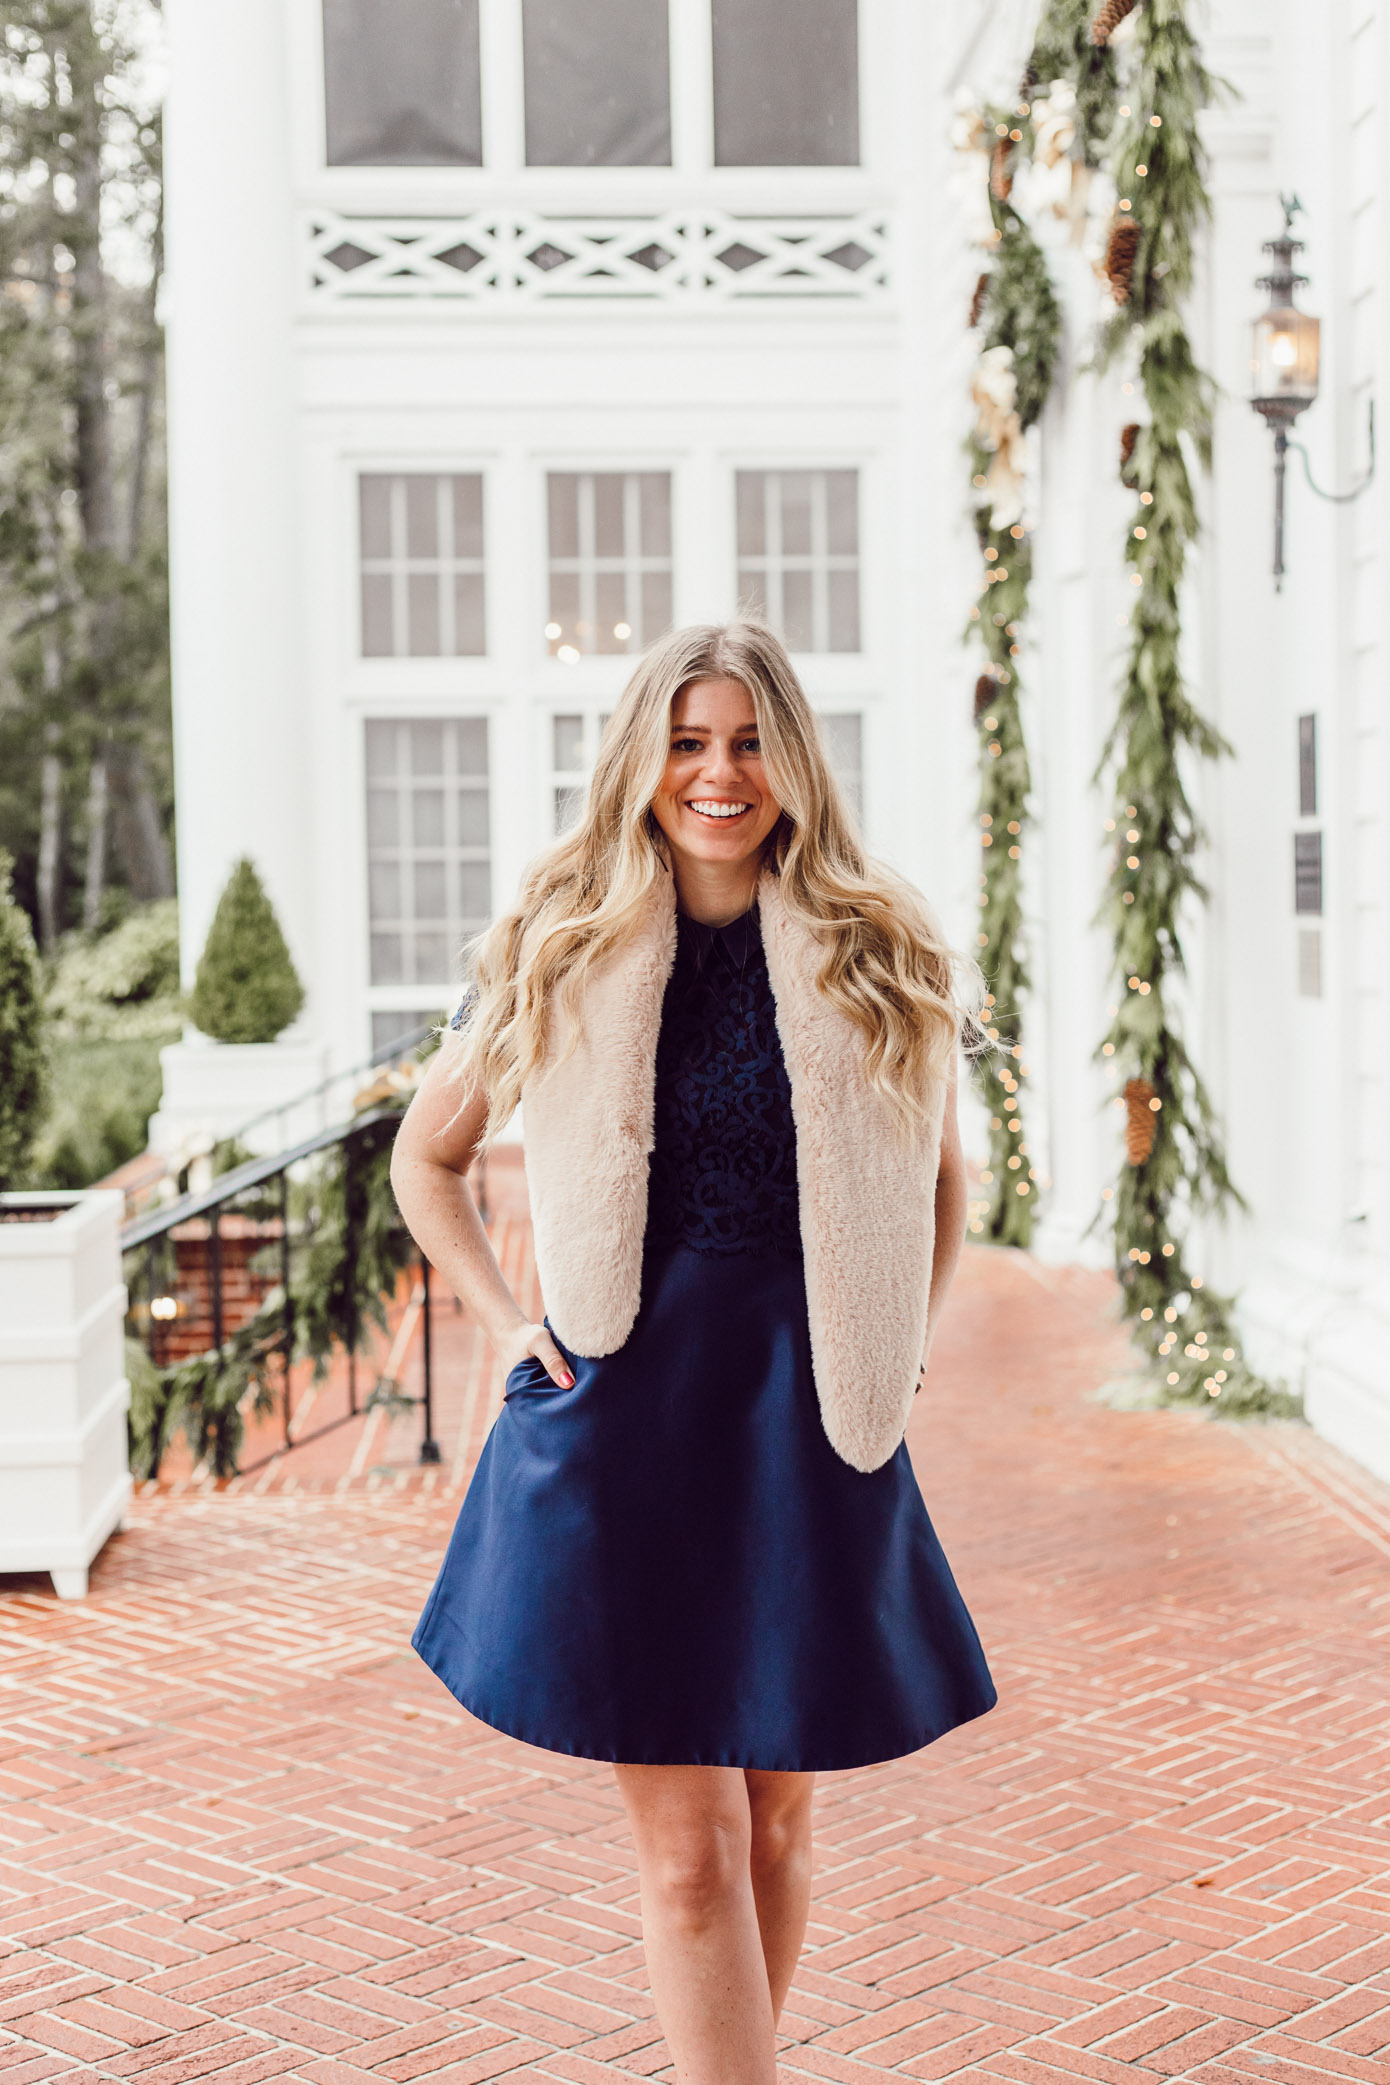 Finding the Perfect Holiday Party Dress with Rent the Runway on Louella Reese Life & Style Blog   Navy Lace Mini Dress, Christmas Party Dress, Faux Fur Stole